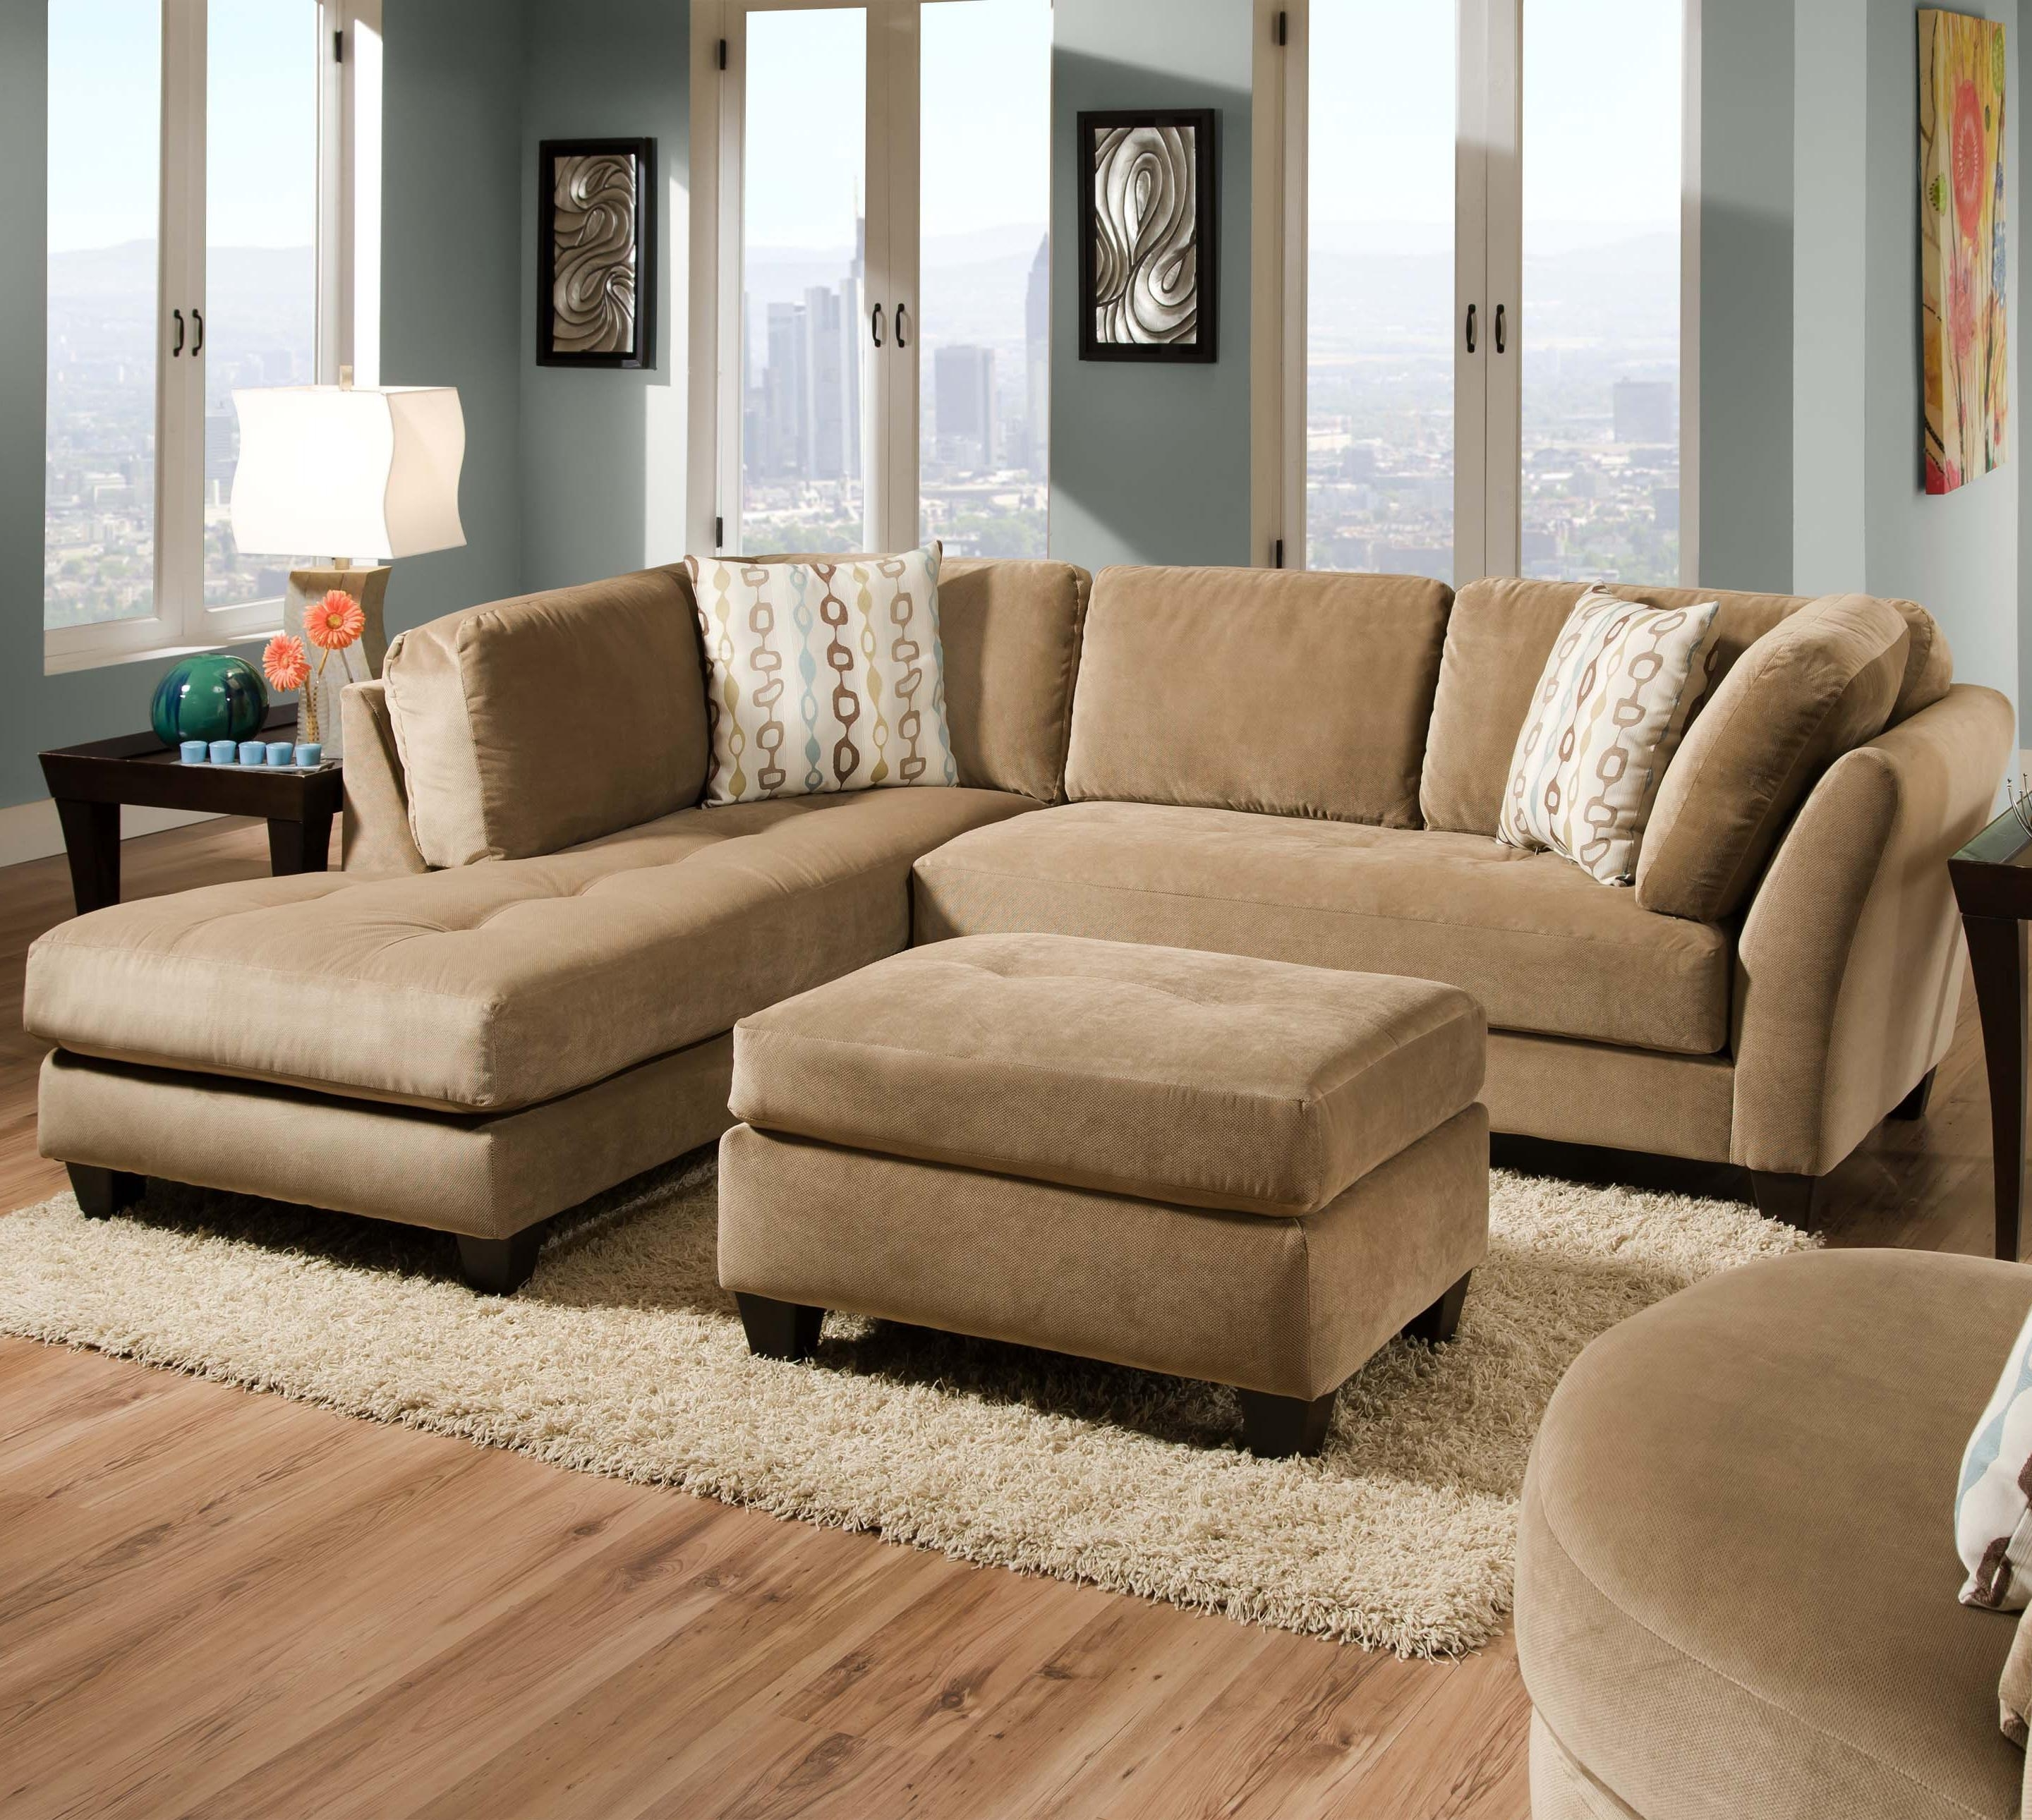 35B Slugger Mocha 2 Piece Sectionalcorinthian – Great American Within Favorite Memphis Sectional Sofas (View 1 of 20)